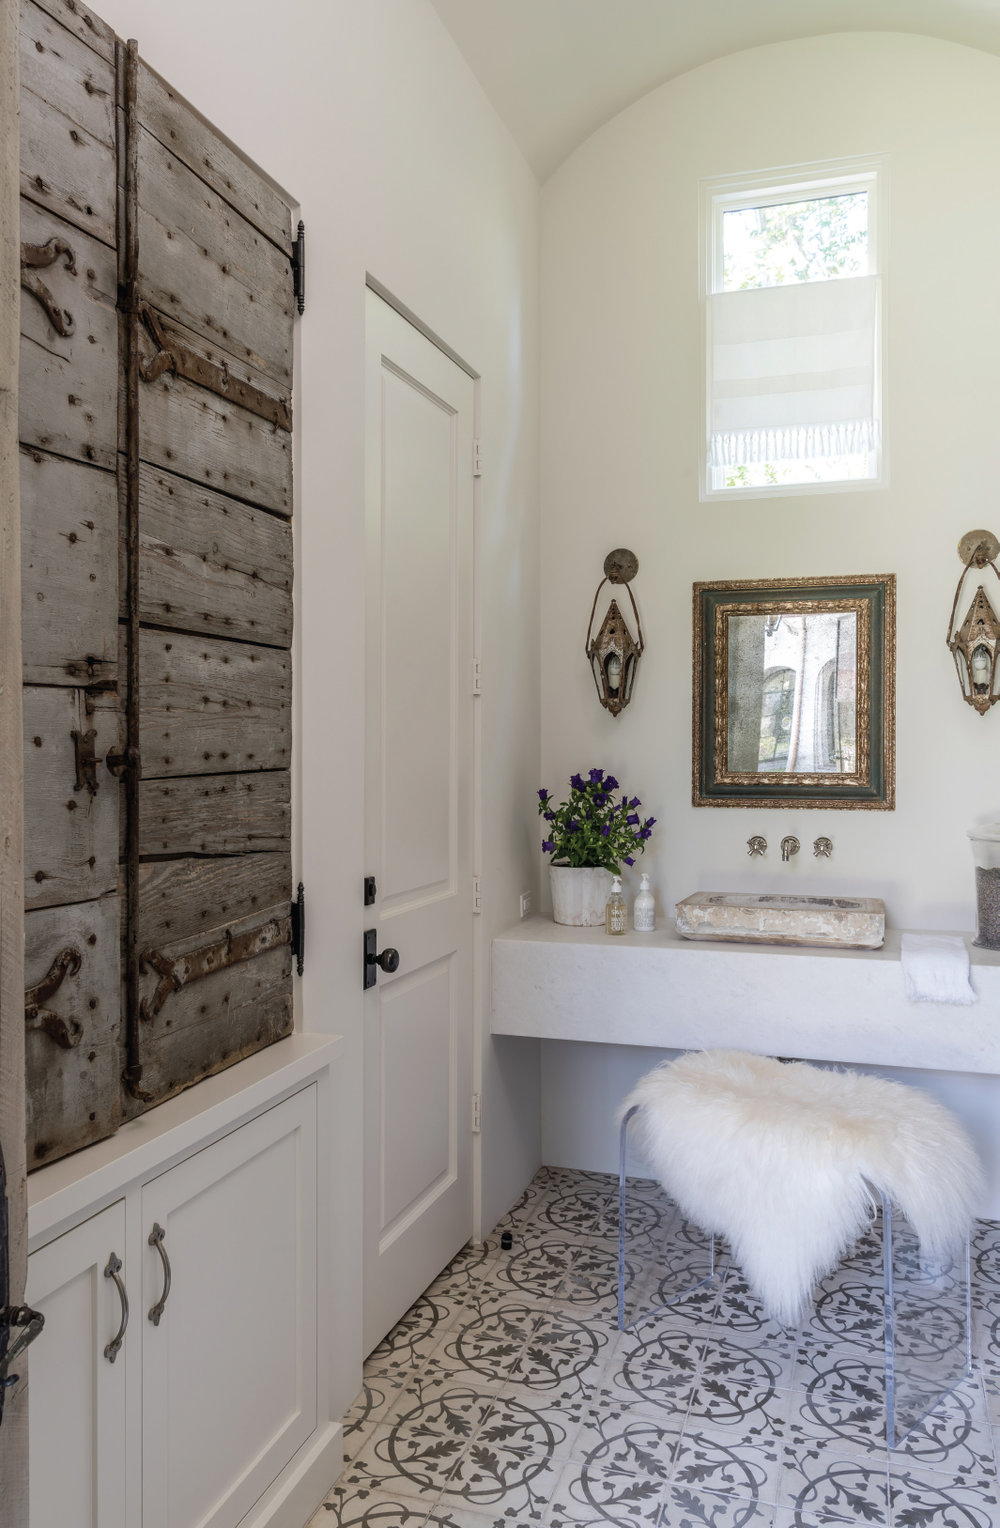 The fusion of antique doors from Round Top, reclaimed floor tile and sink paired with a modern bench and clean lined vanity is a perfect recipe for the mixology of design. Photo by Michael Hunter